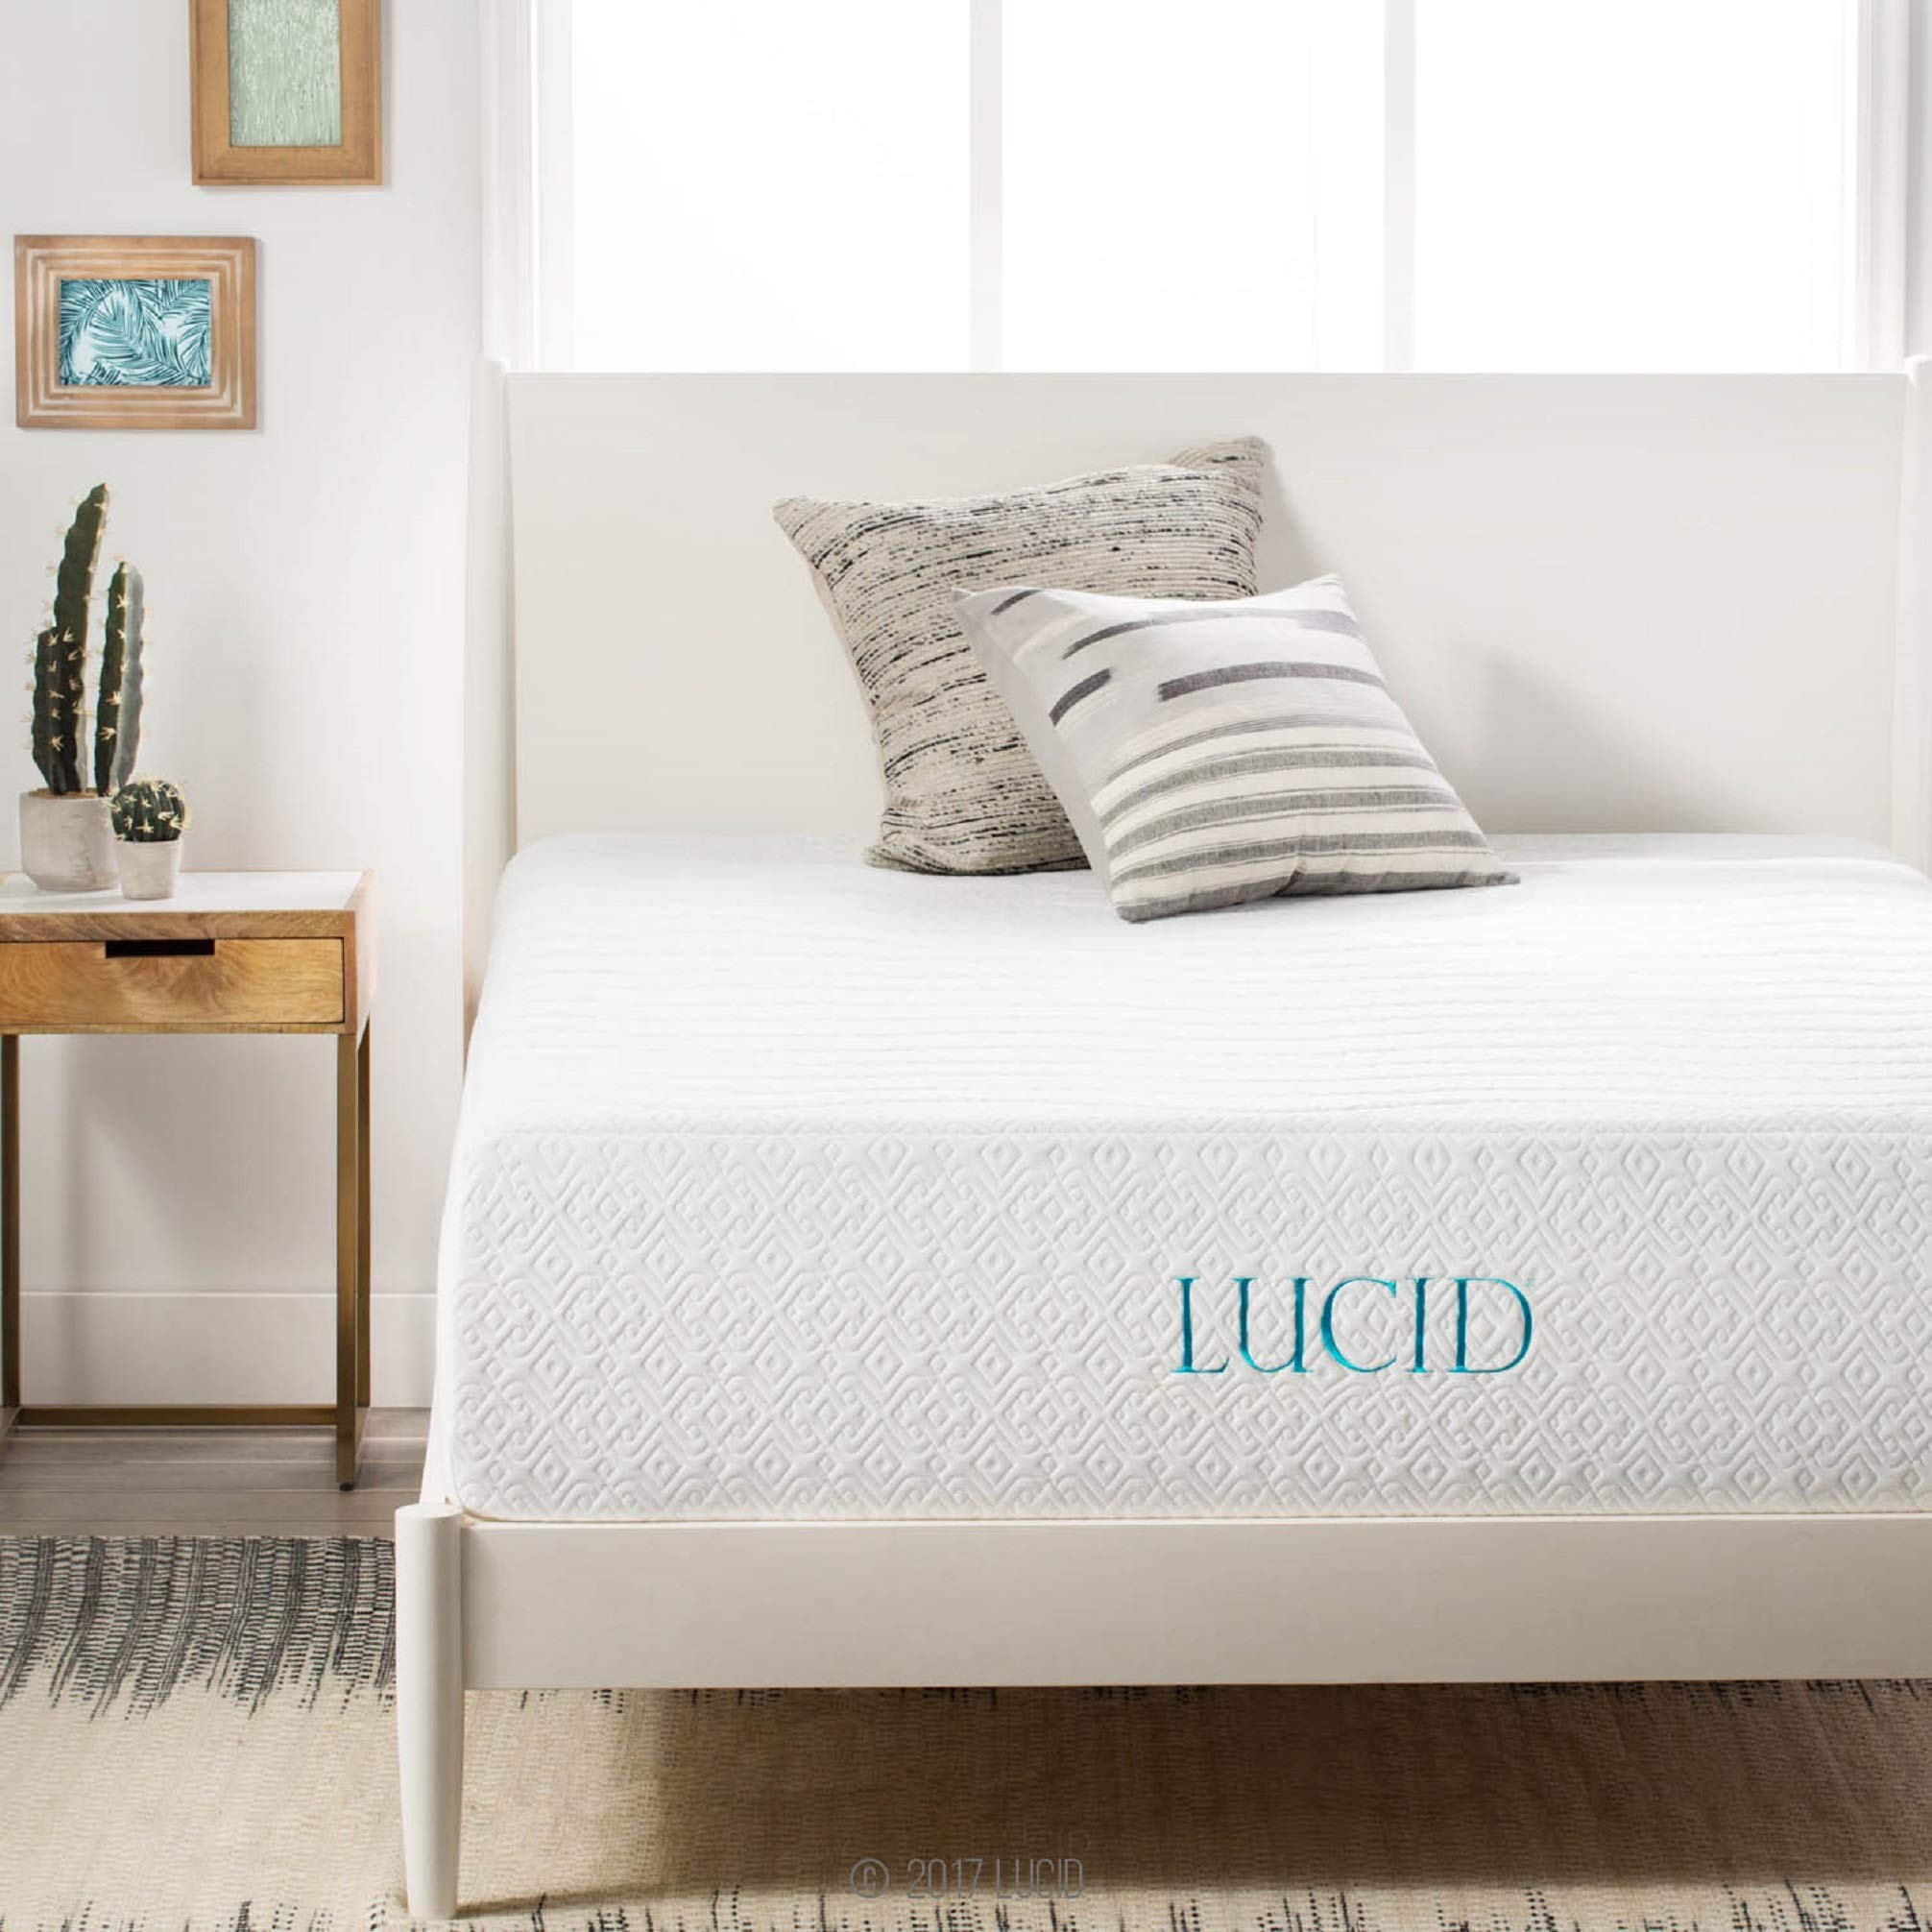 LUCID 14 Inch Medium-Plush Memory Foam Mattress - Ventilated Gel Memory Foam + Bamboo Charcoal Infused Memory Foam - CertiPUR-US Certified - 10-Year Warranty - King by LUCID